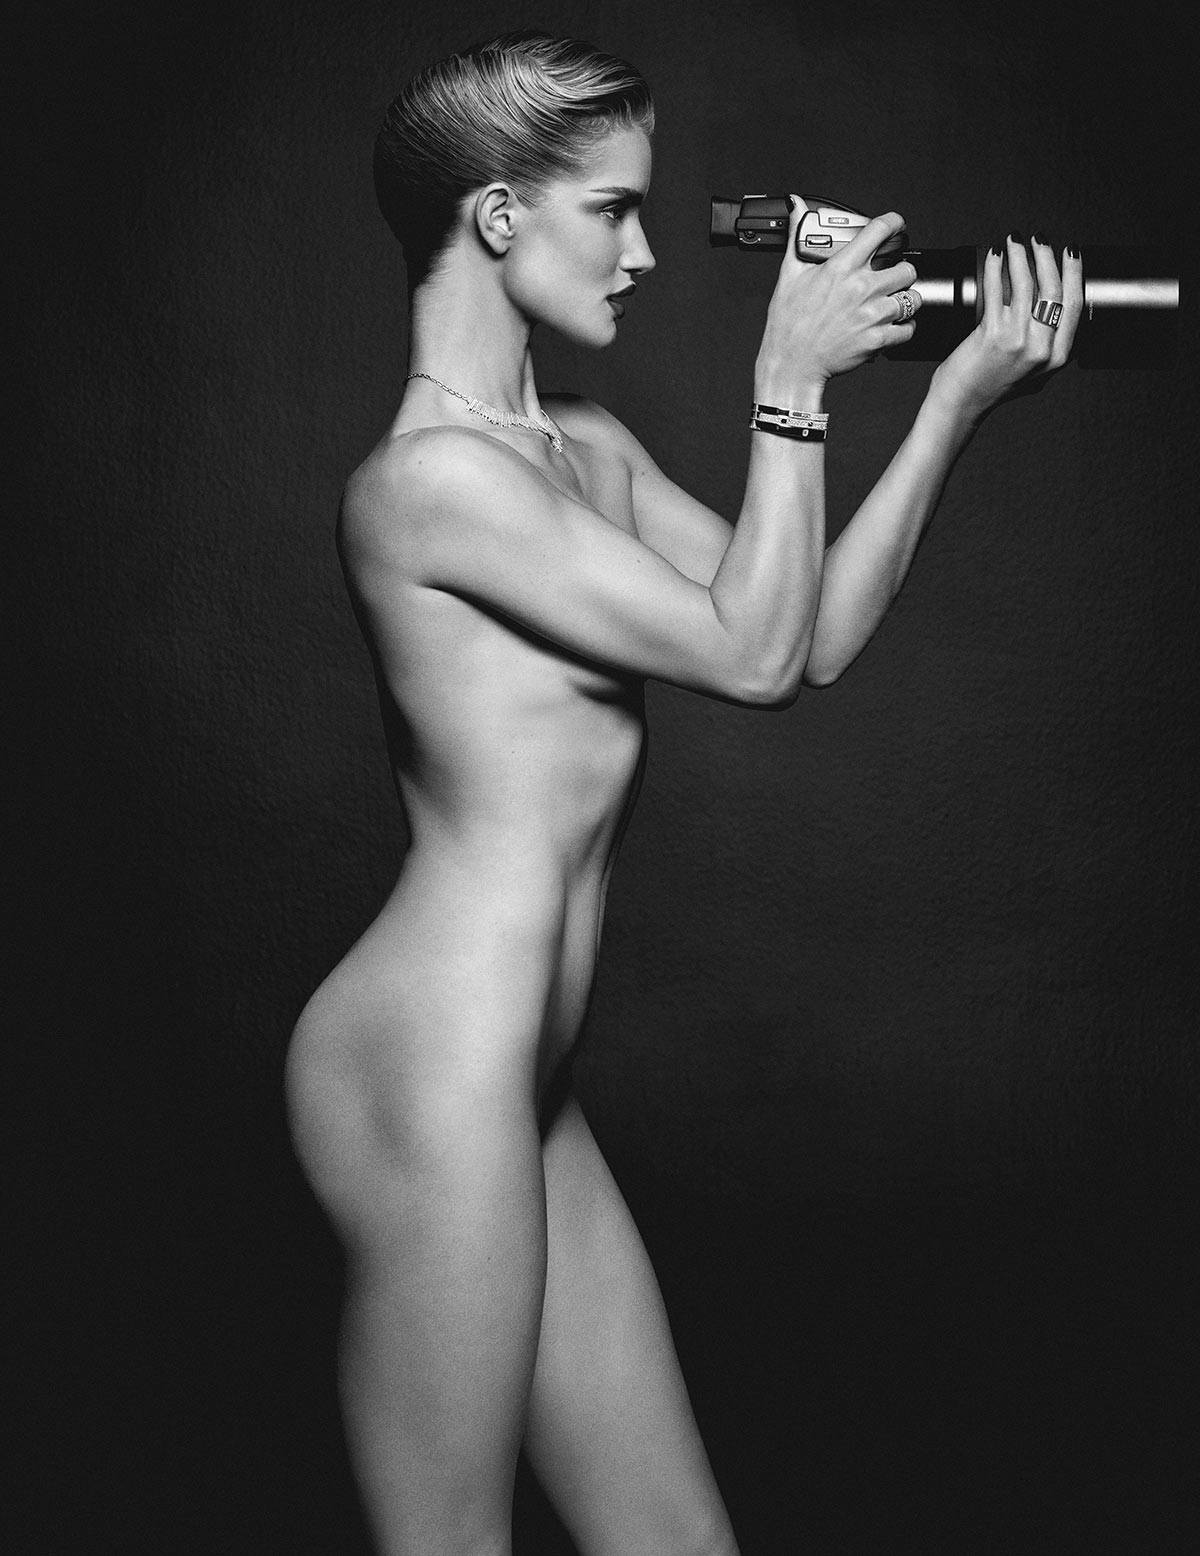 Rosie Huntington Whiteley Naked - 7 Photos nudes (91 pic)